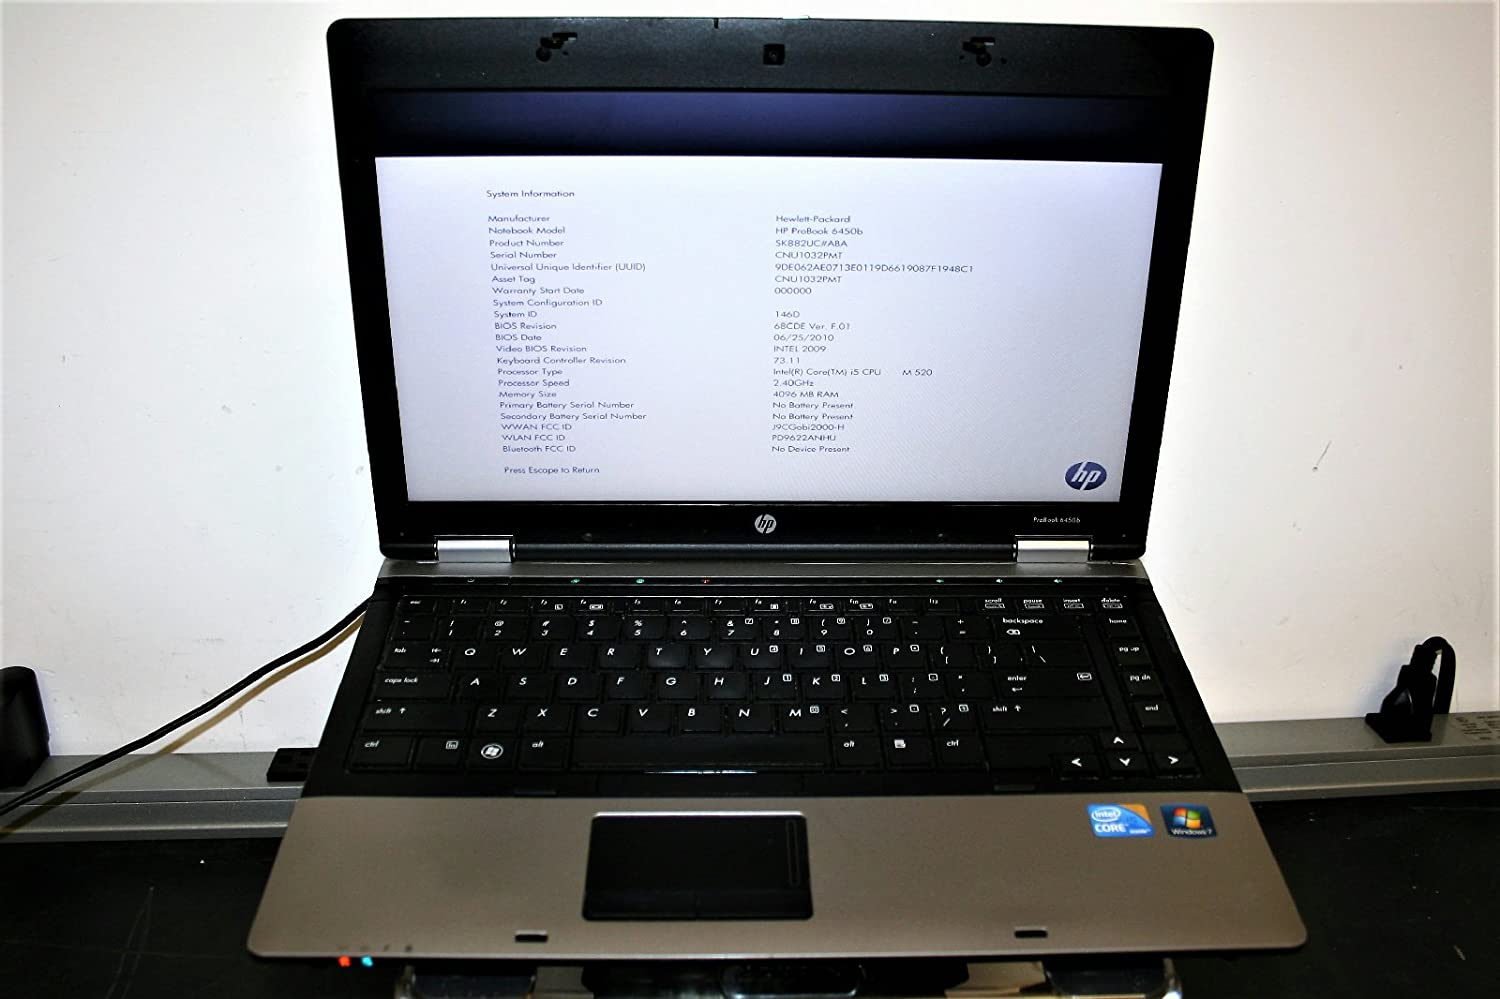 Notebook 14.1 HP ProBook 6450b i5 M 520 2.40 GHz Professional: Amazon.es: Informática